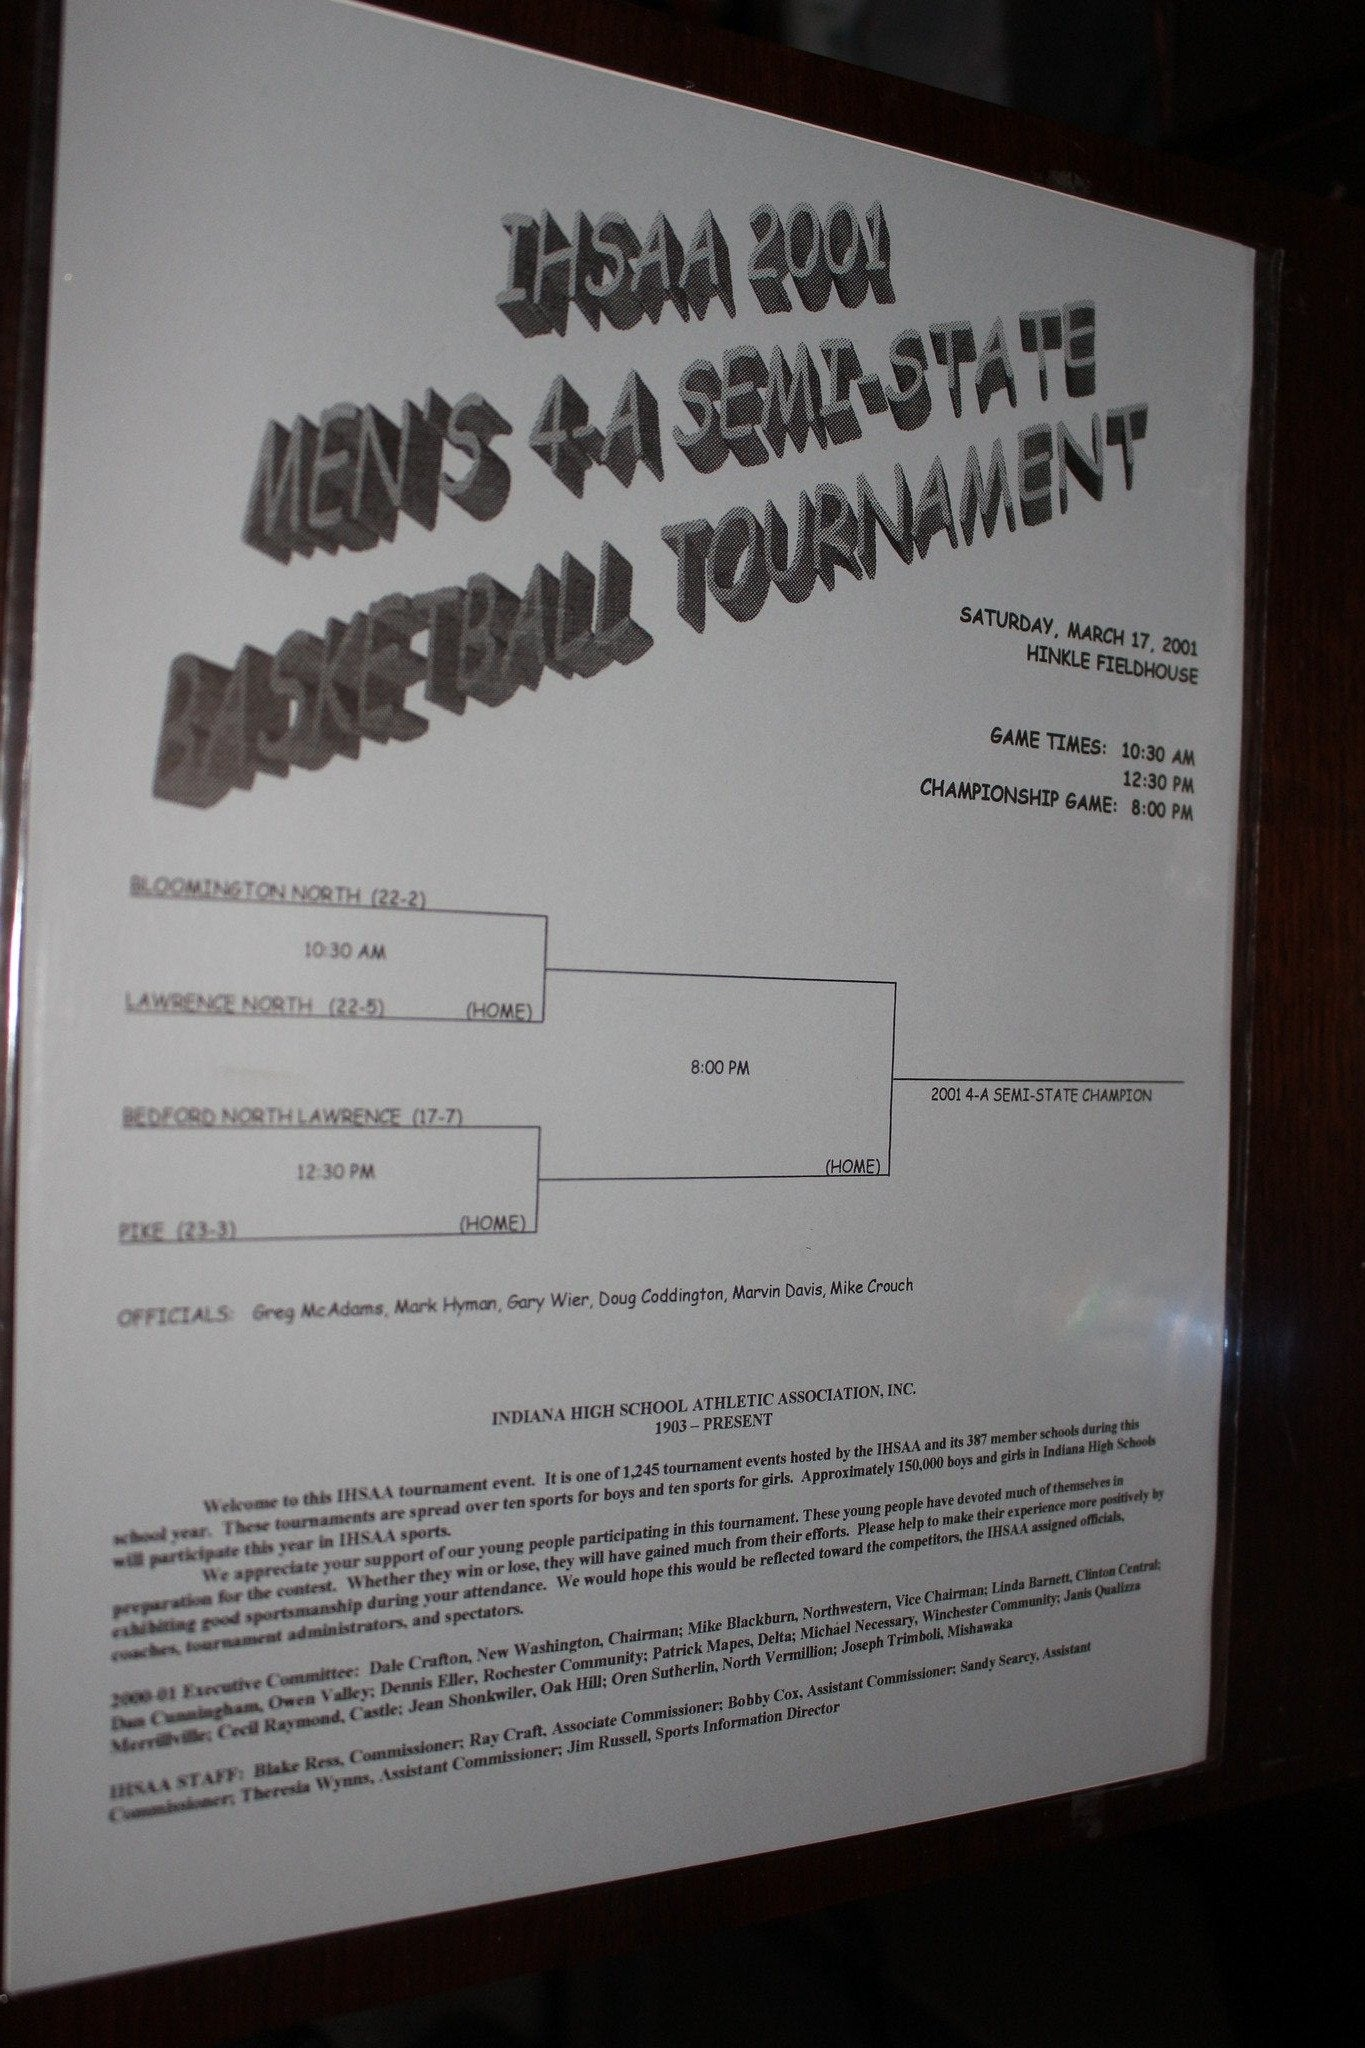 2001 Indiana High School Hinkle Fieldhouse Semi-State Basketball Program - Vintage Indy Sports